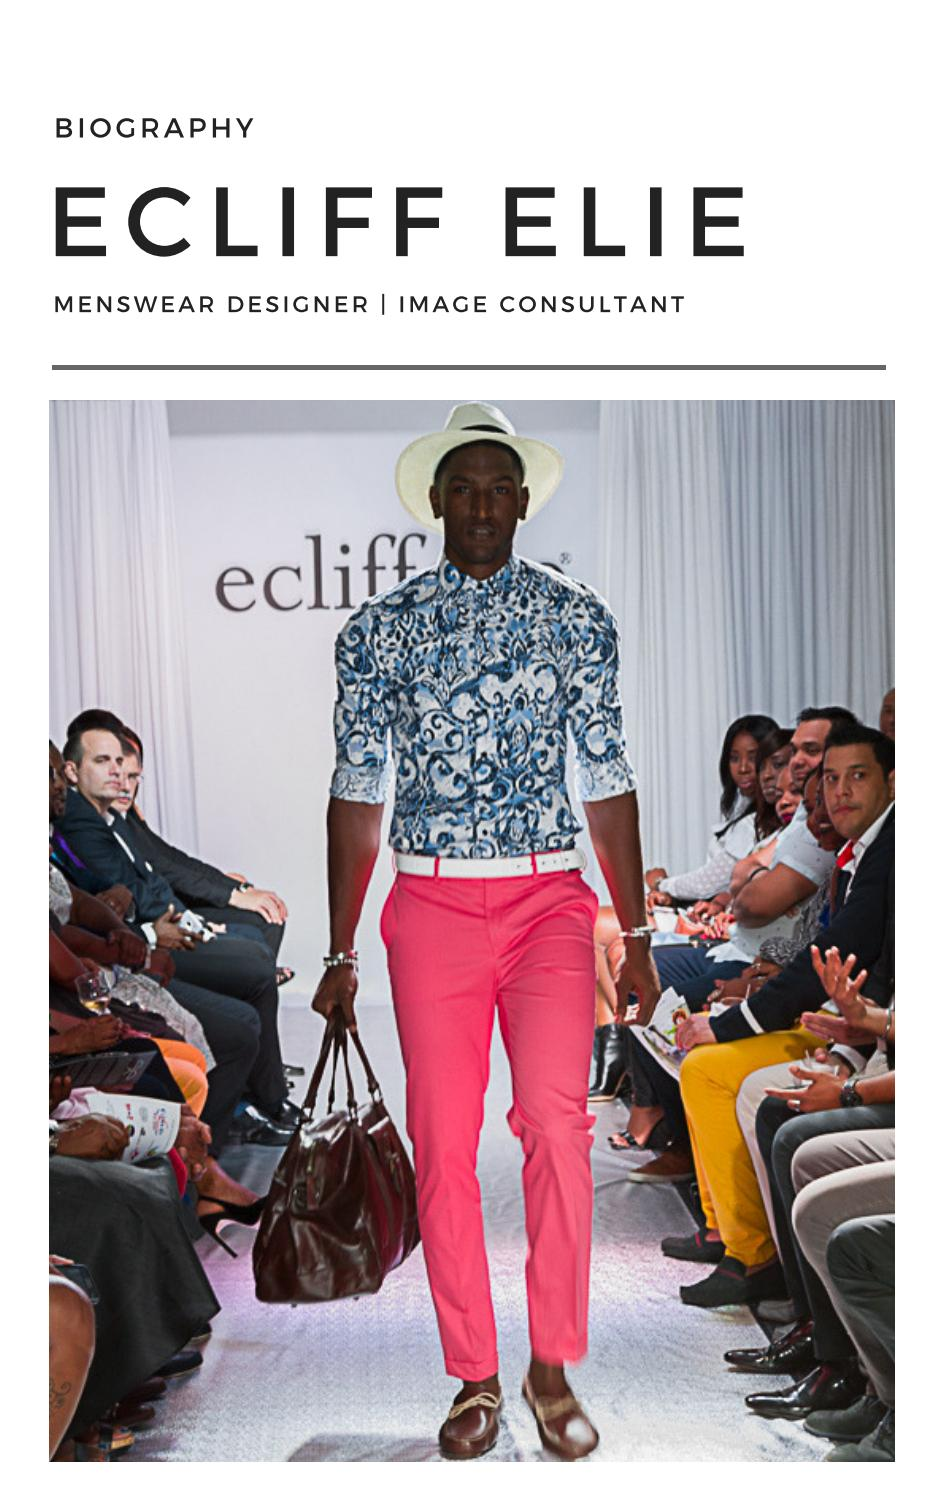 Biography Designer Ecliff Elie By Etcetera The Company Pr Issuu